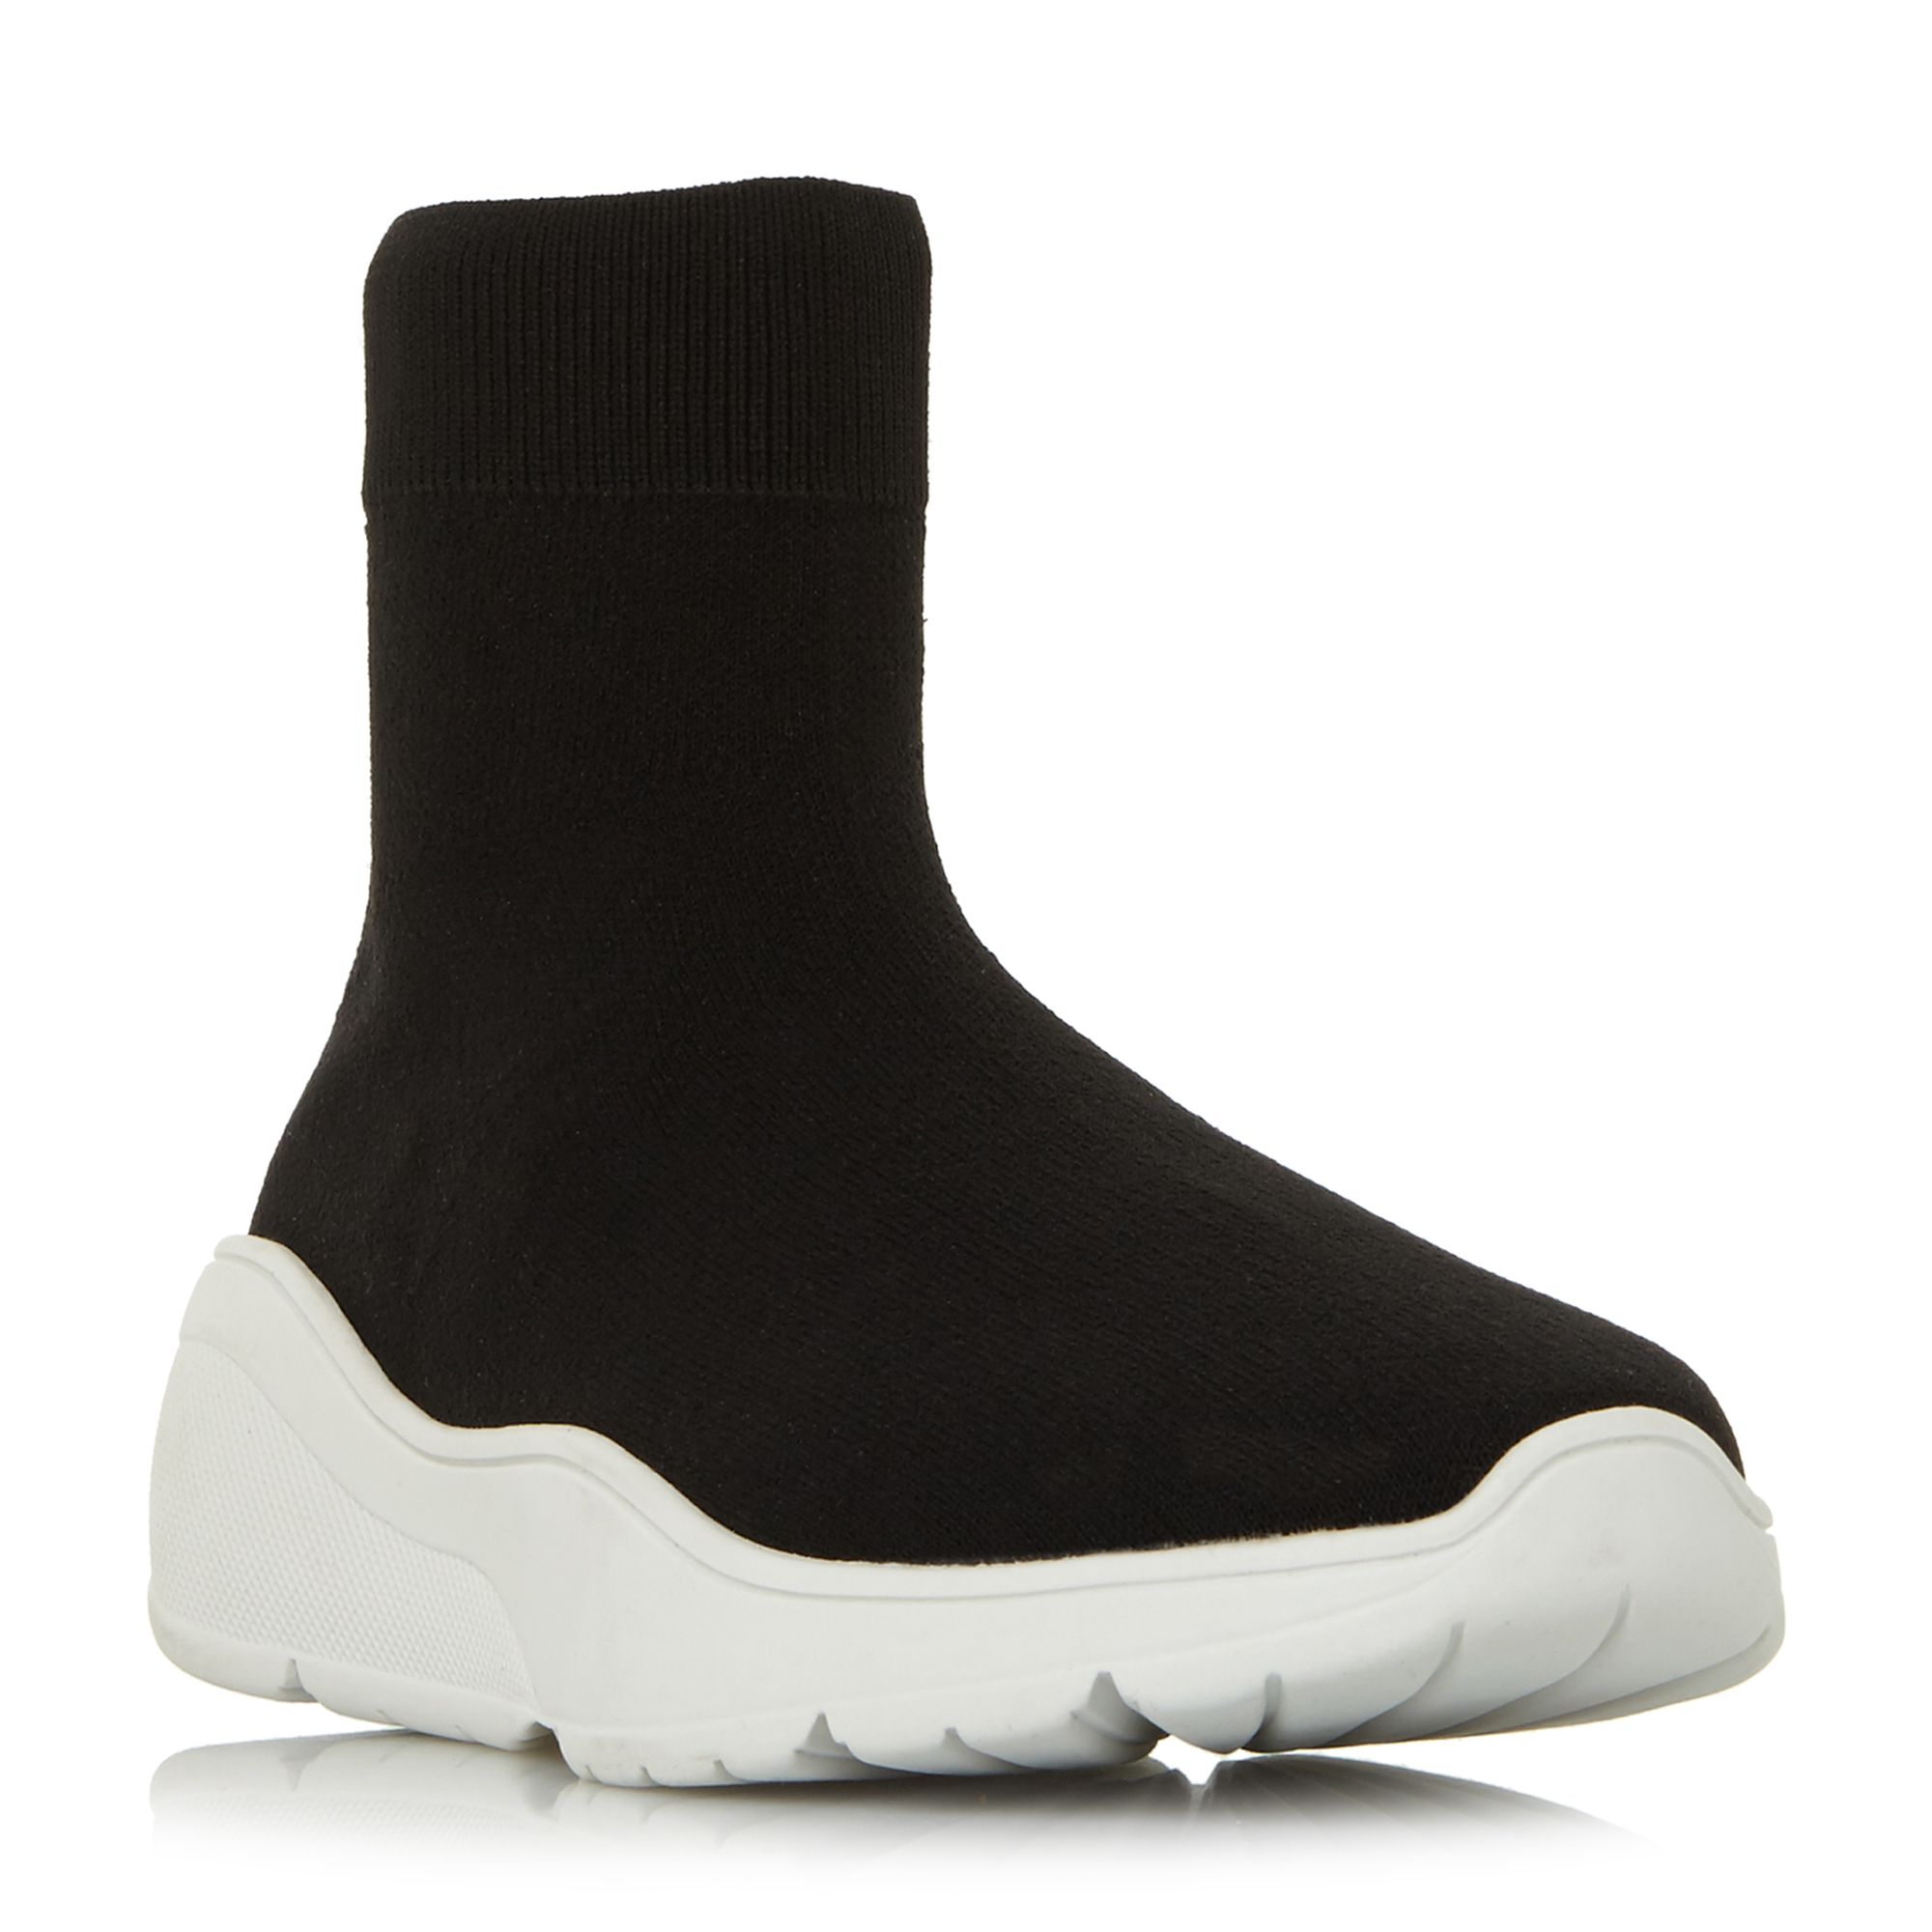 Steve Madden Flex Sm Sock Boot Runners, Black